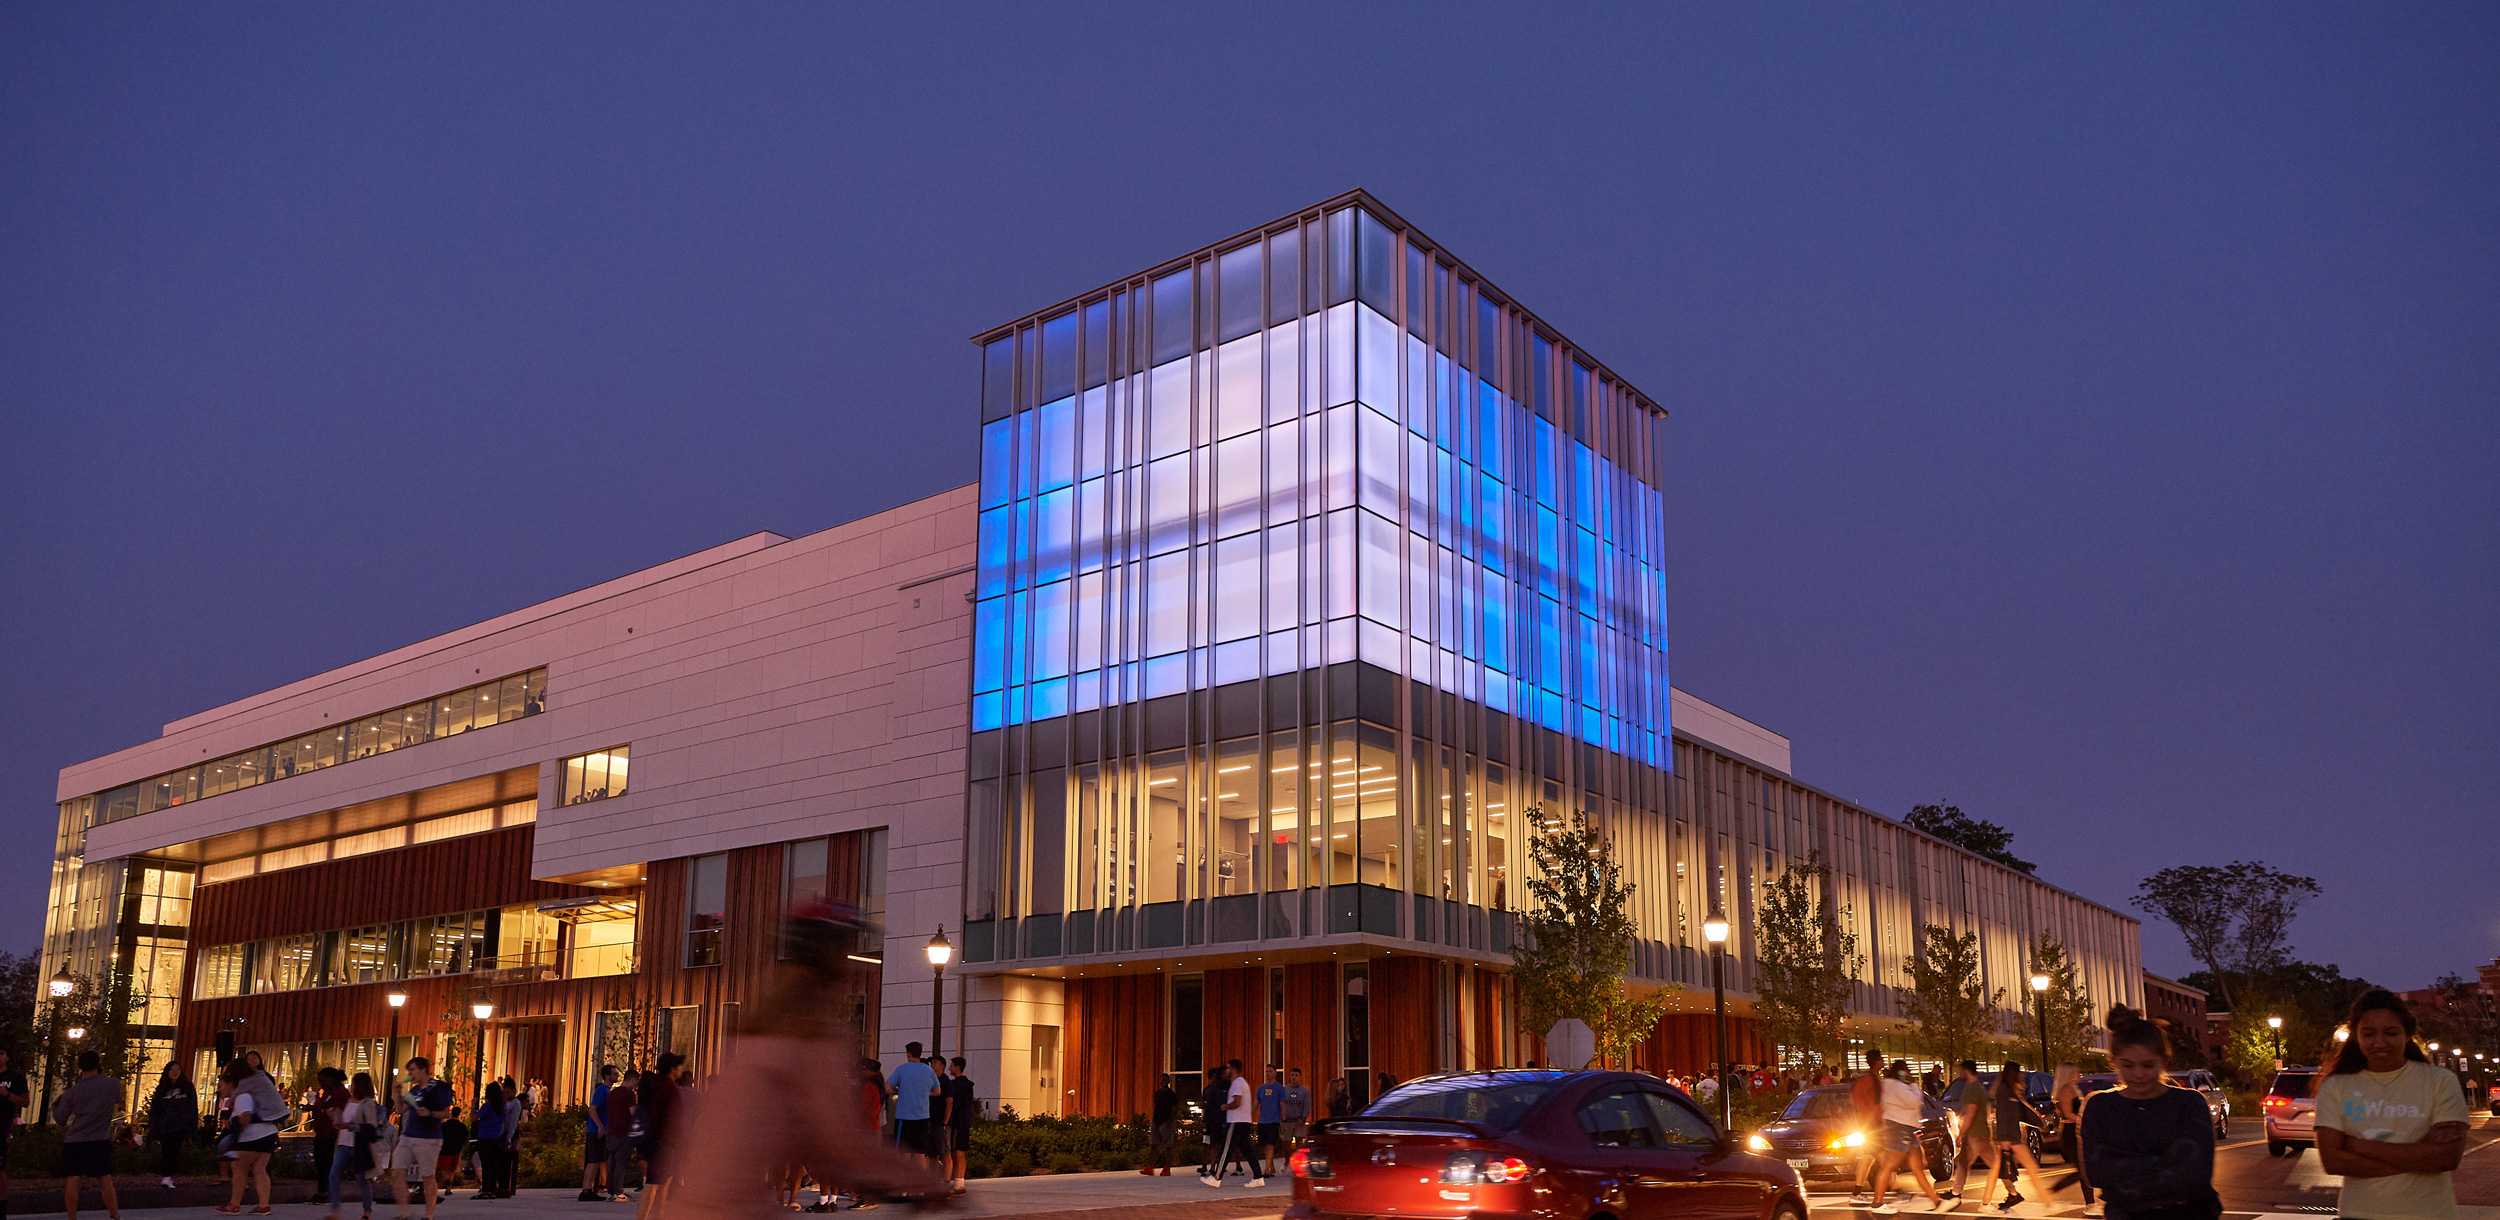 A view of the new Student Recreation Center at dusk following the opening ceremony